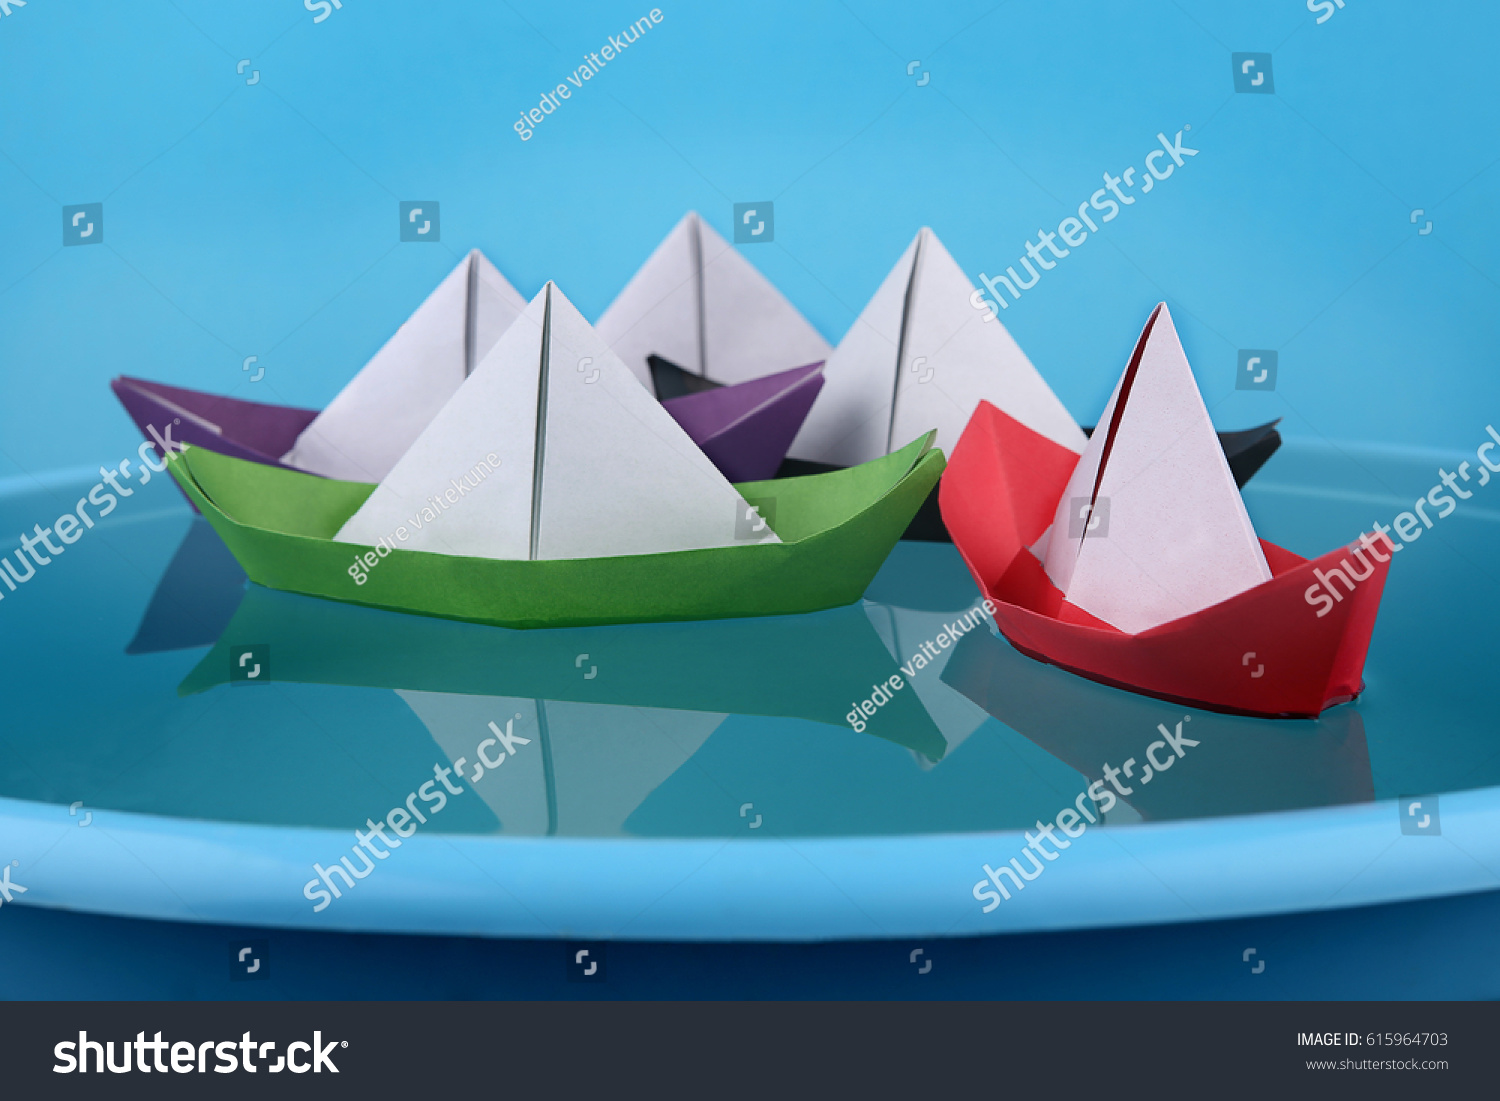 Paper boats game origami paper ships stock photo 615964703 paper boats game origami paper ships sailing on blue water surface jeuxipadfo Images